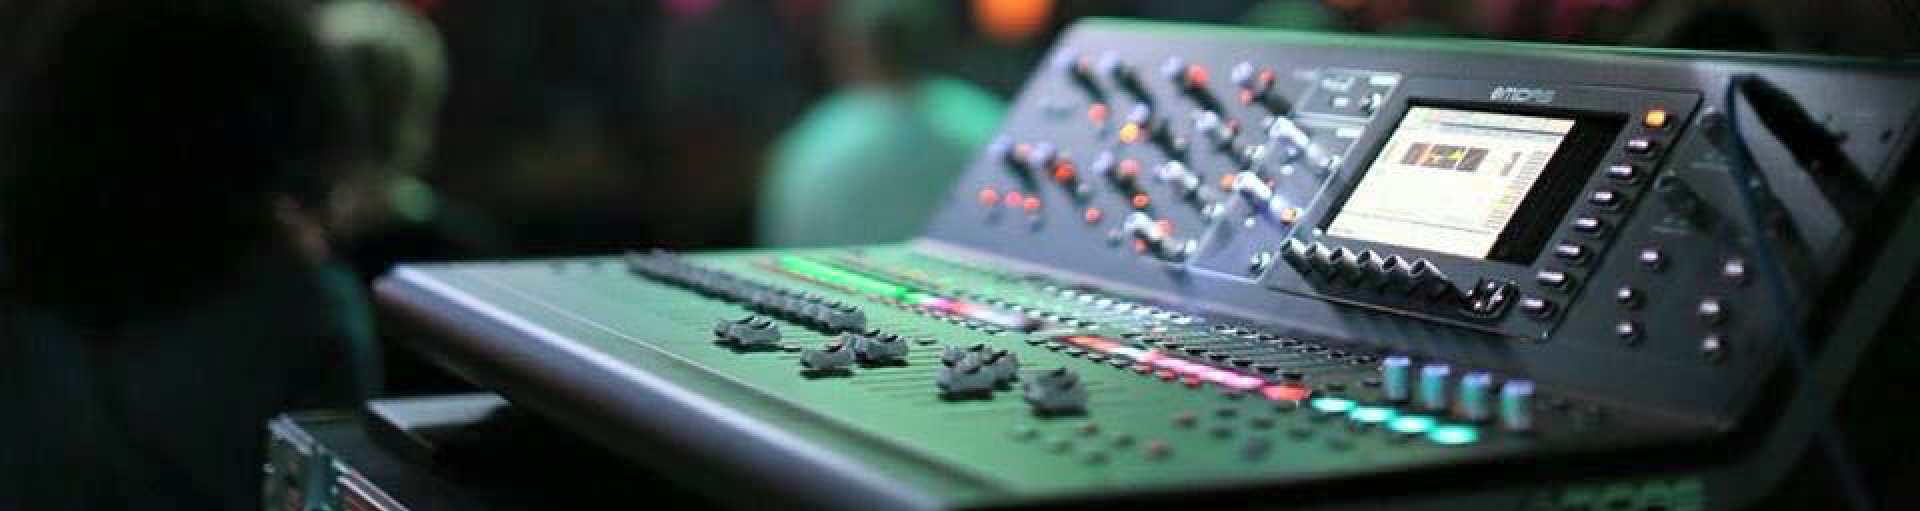 Show with Midas mixer console